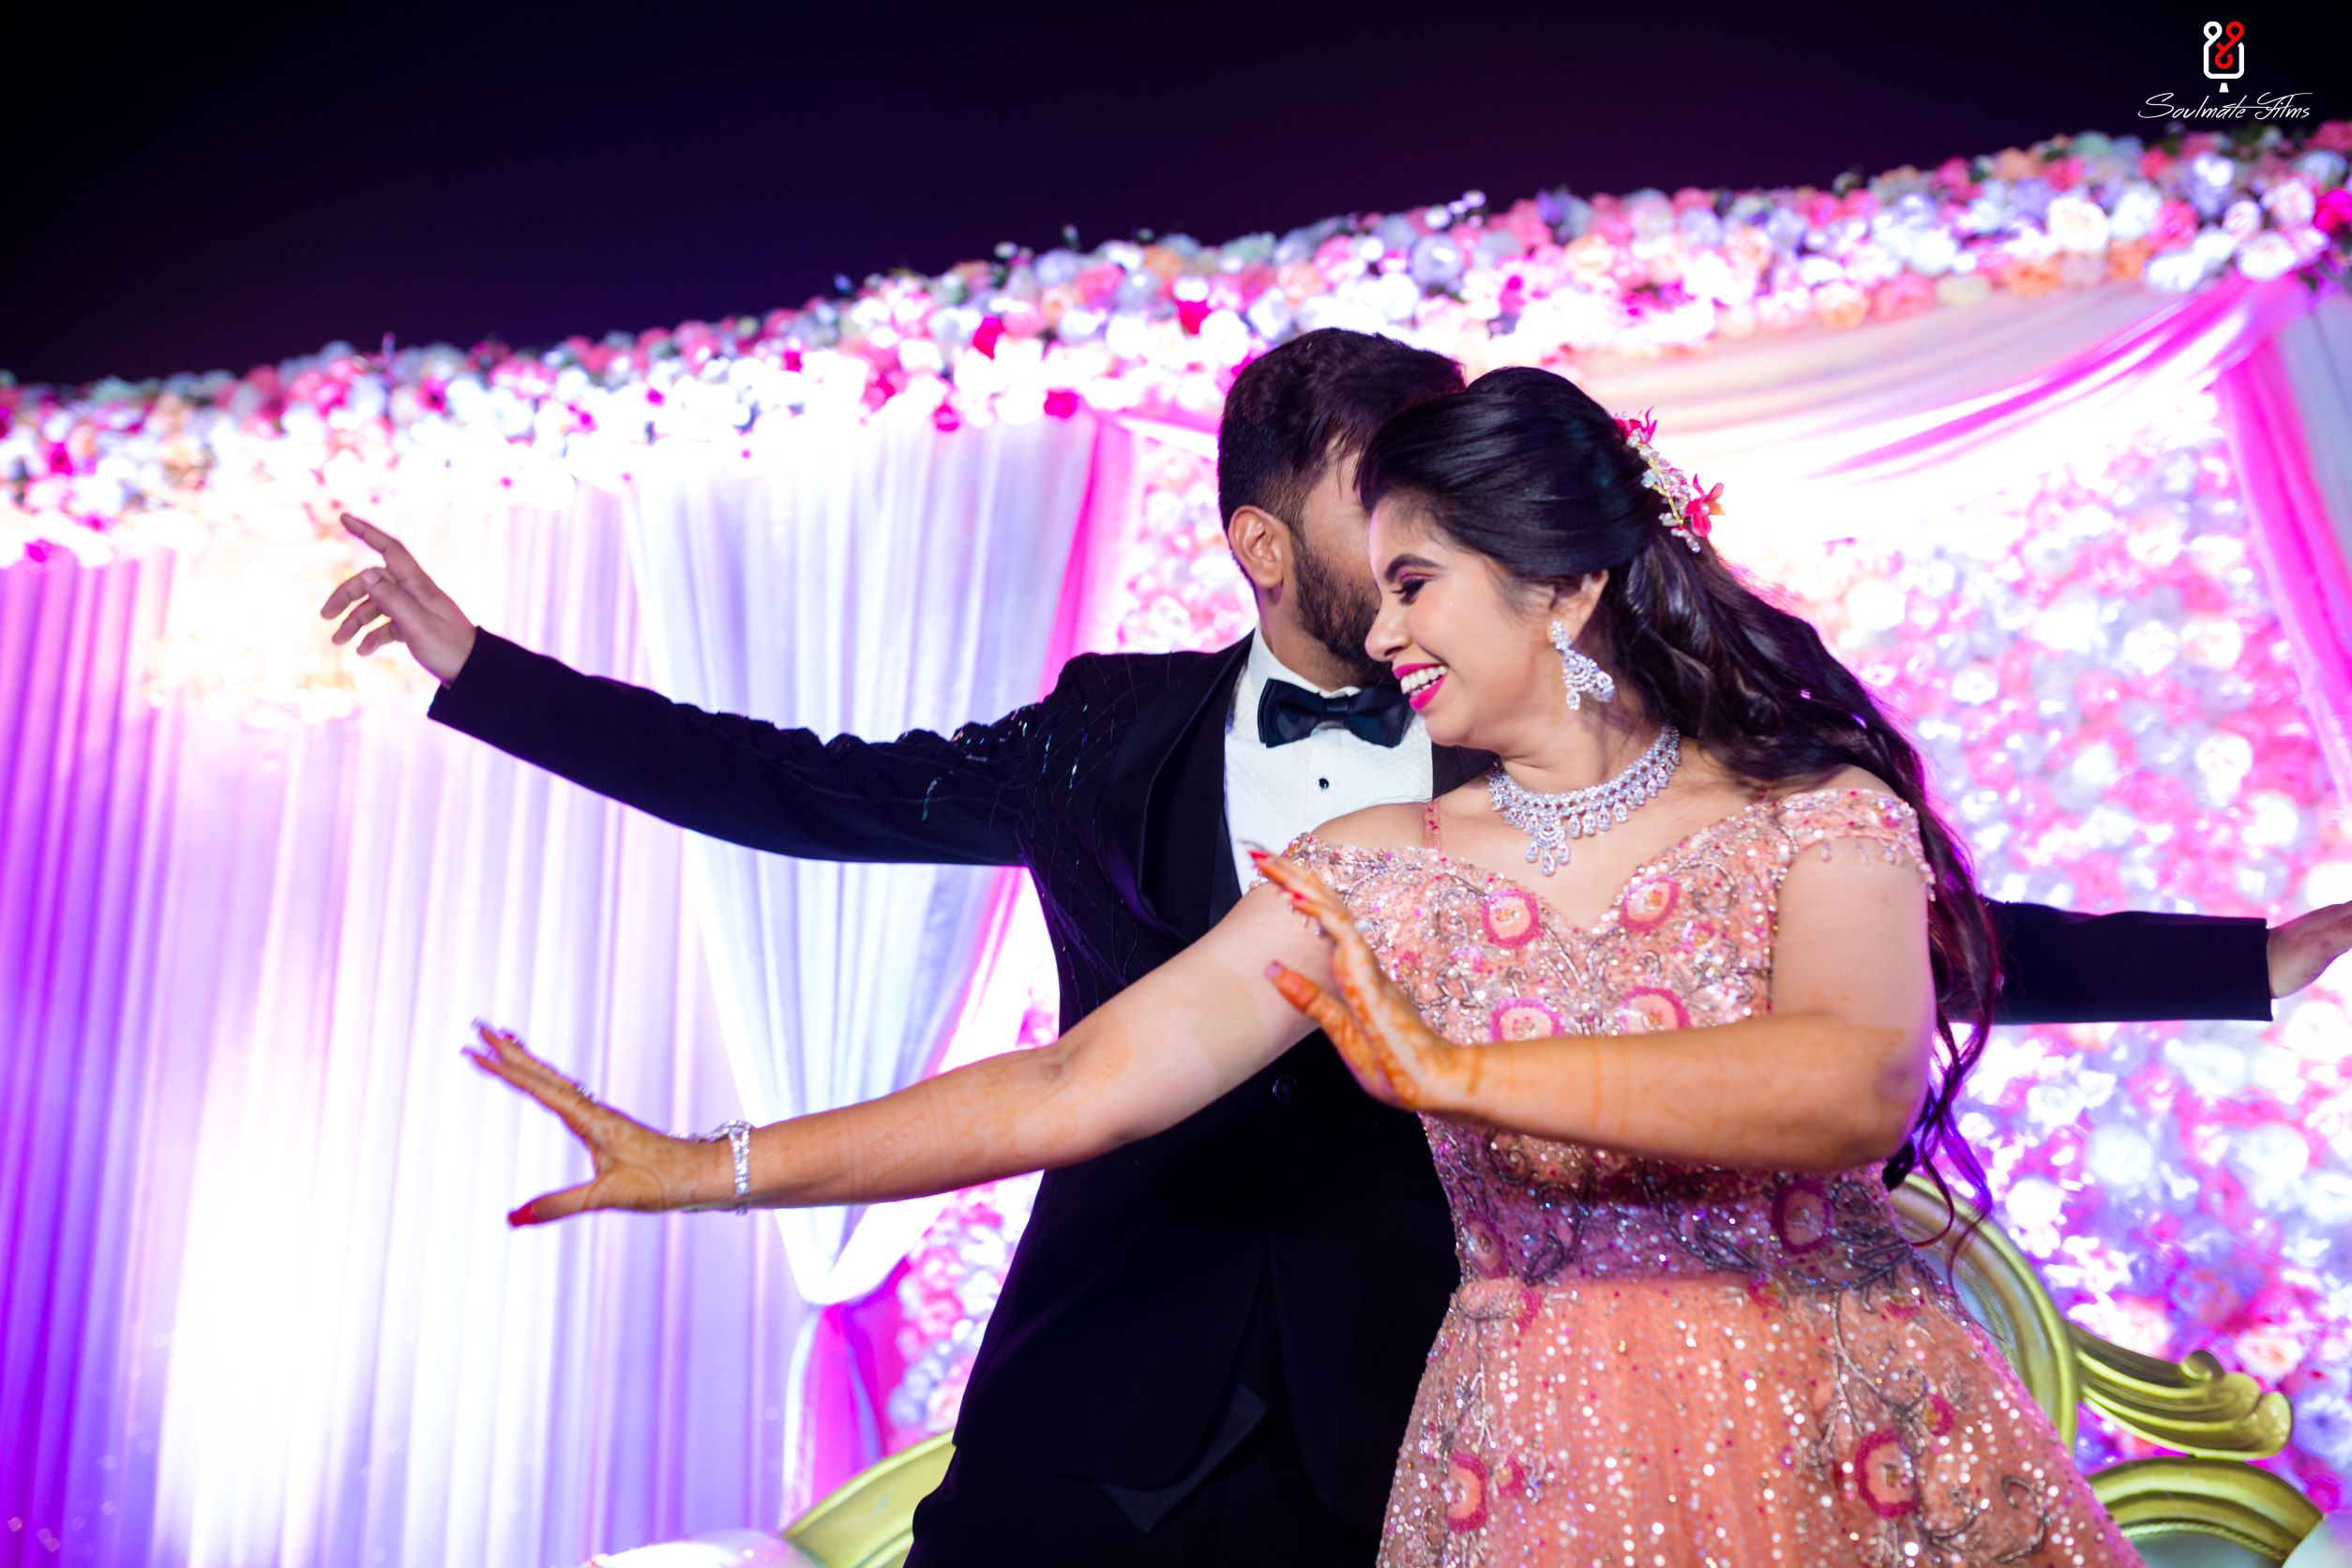 candid shot of the couple dancing